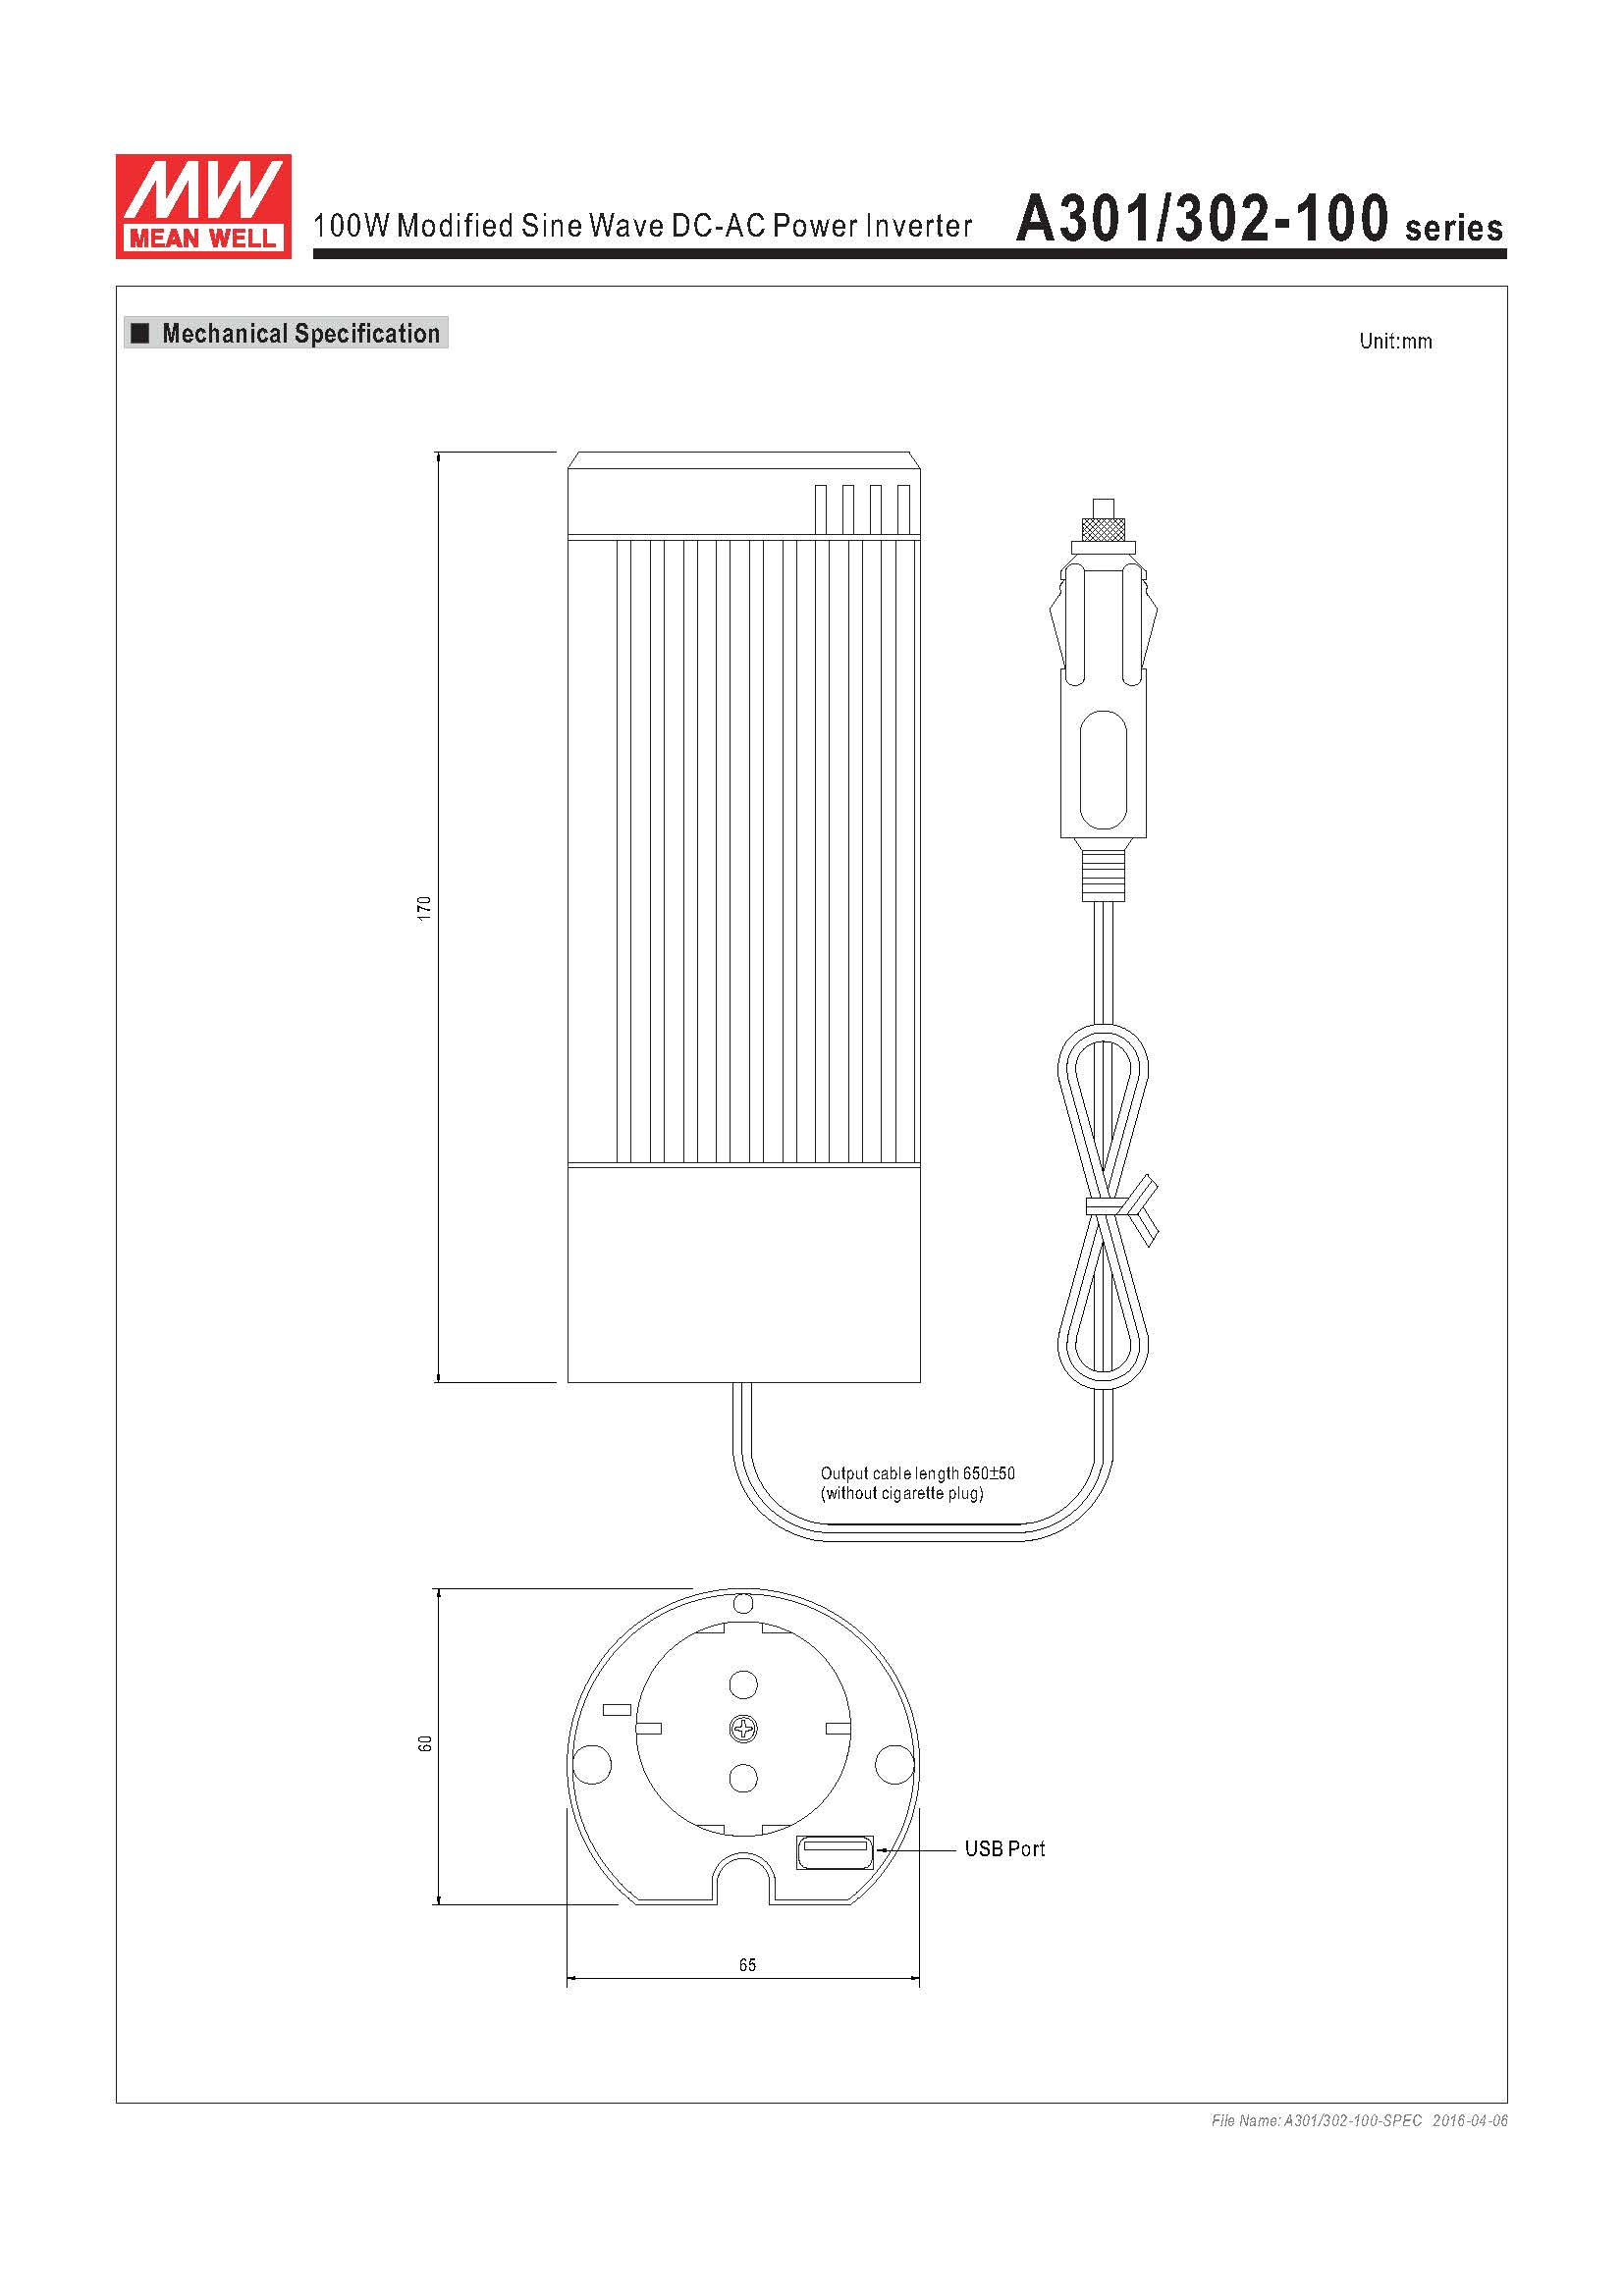 Mean Well 100W Modified Sine Wave DC-AC Power Inverter A301/302-100 Series Specification Diagram Graphic